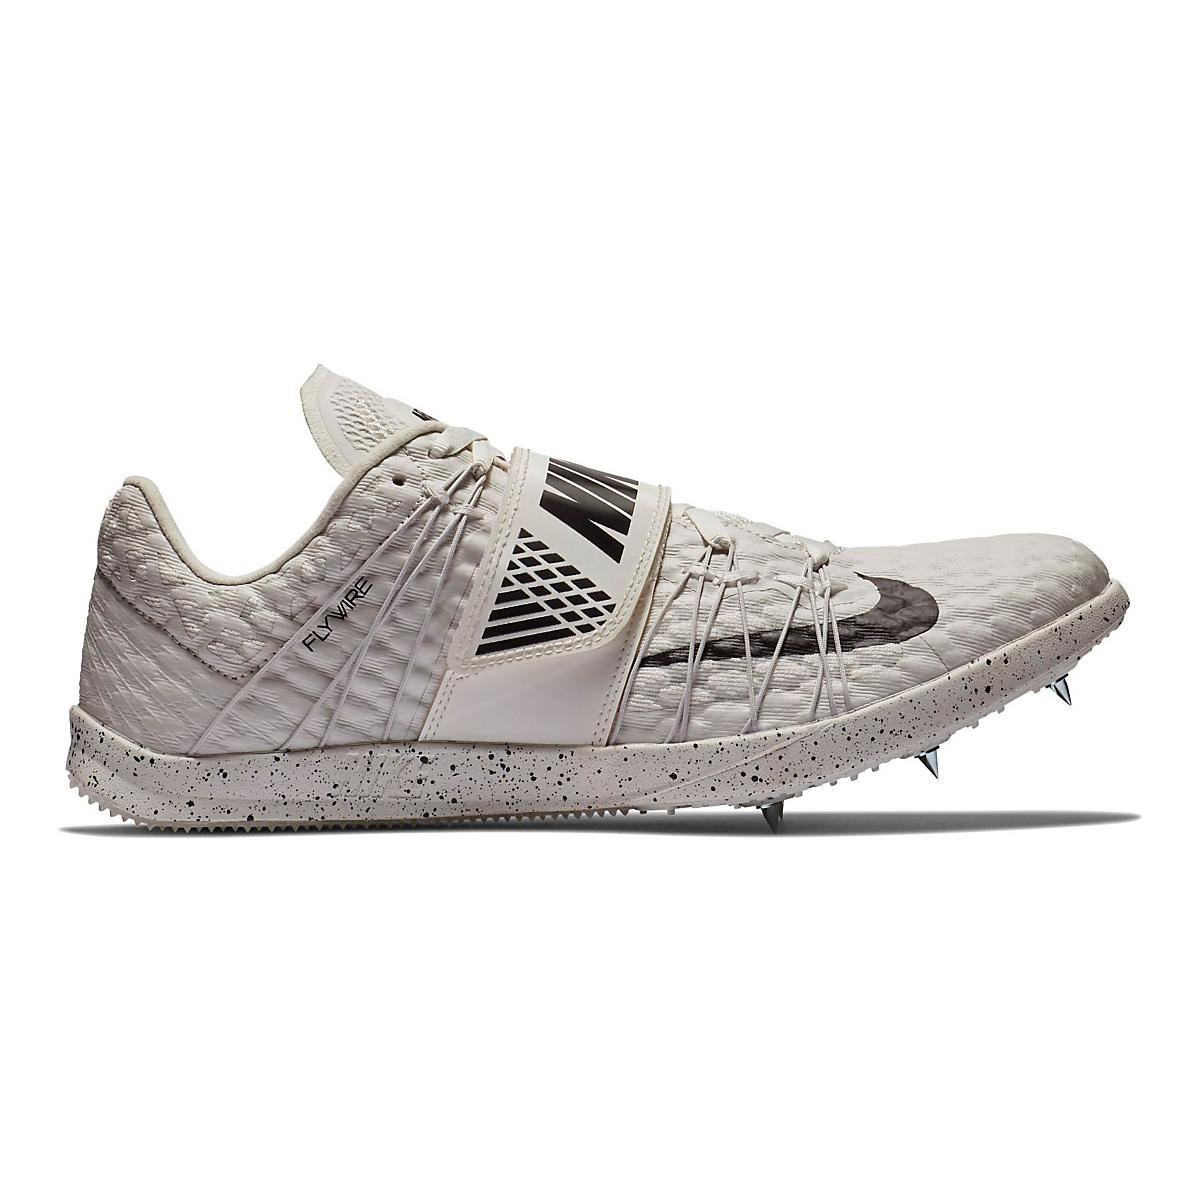 Nike Triple Jump Elite Track and Field Shoe at Road Runner ...